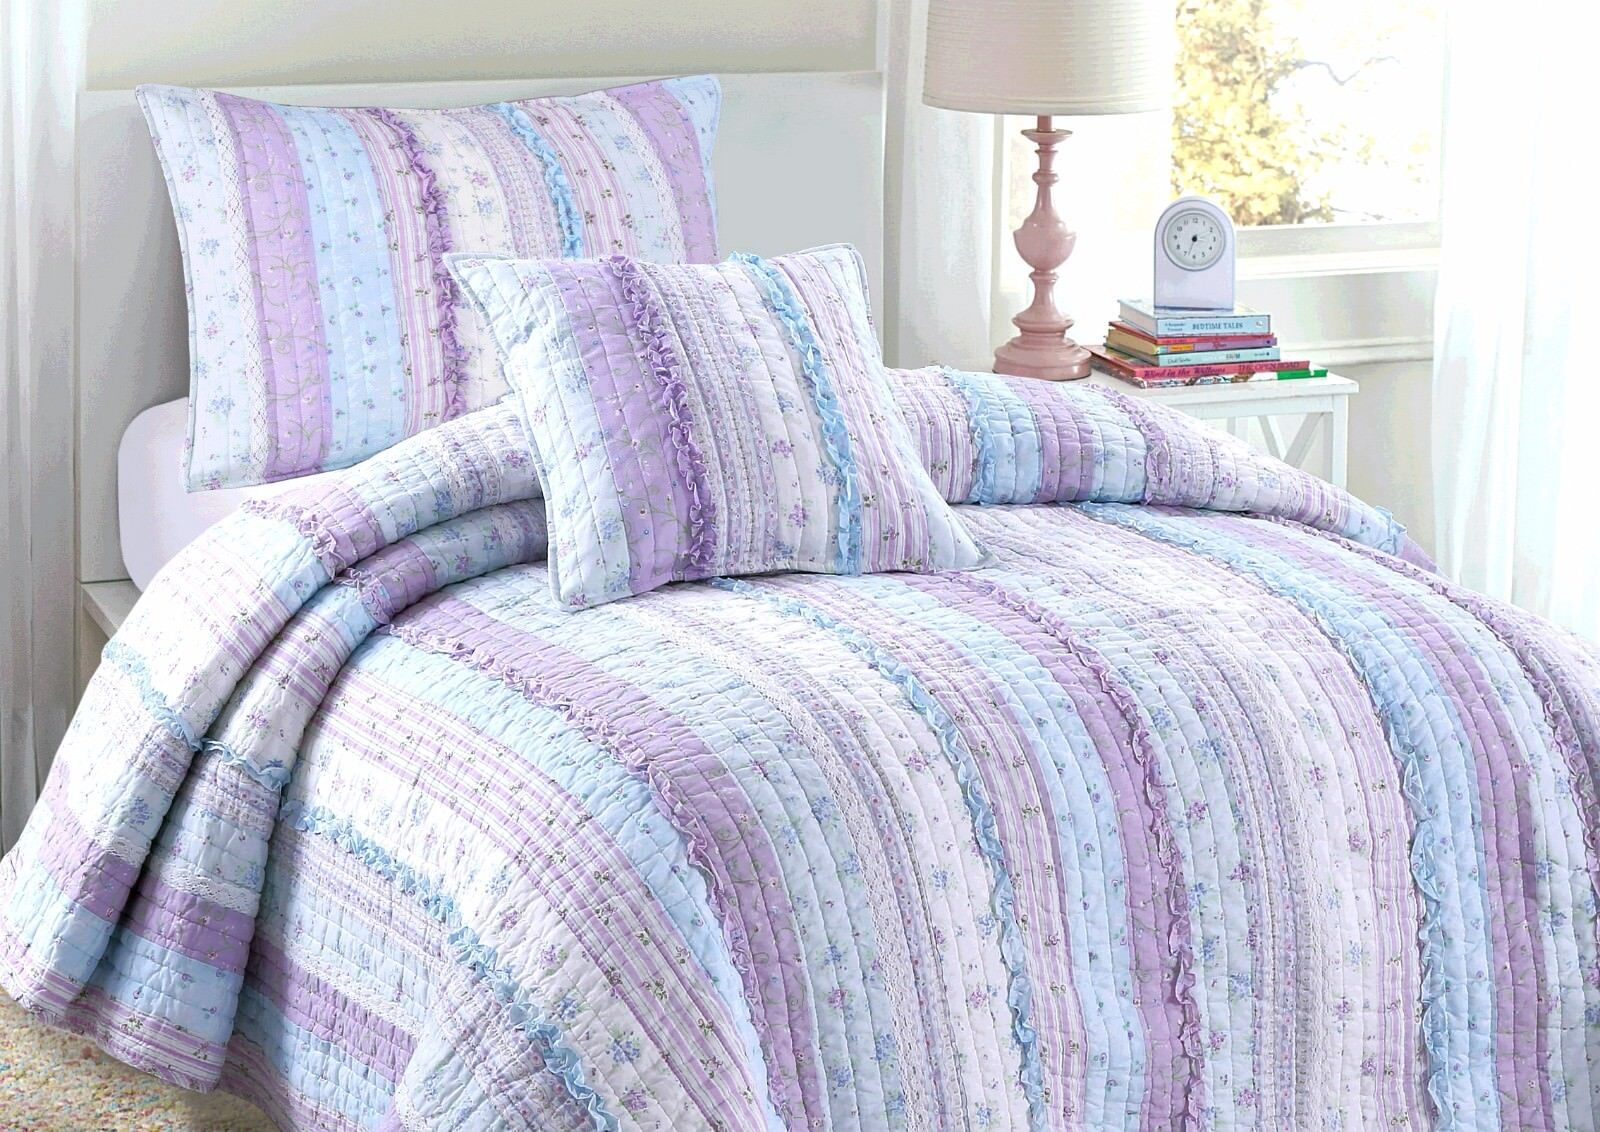 Lilac Romantic Embroidered Chic Lace 100% Cotton Quilt Set,